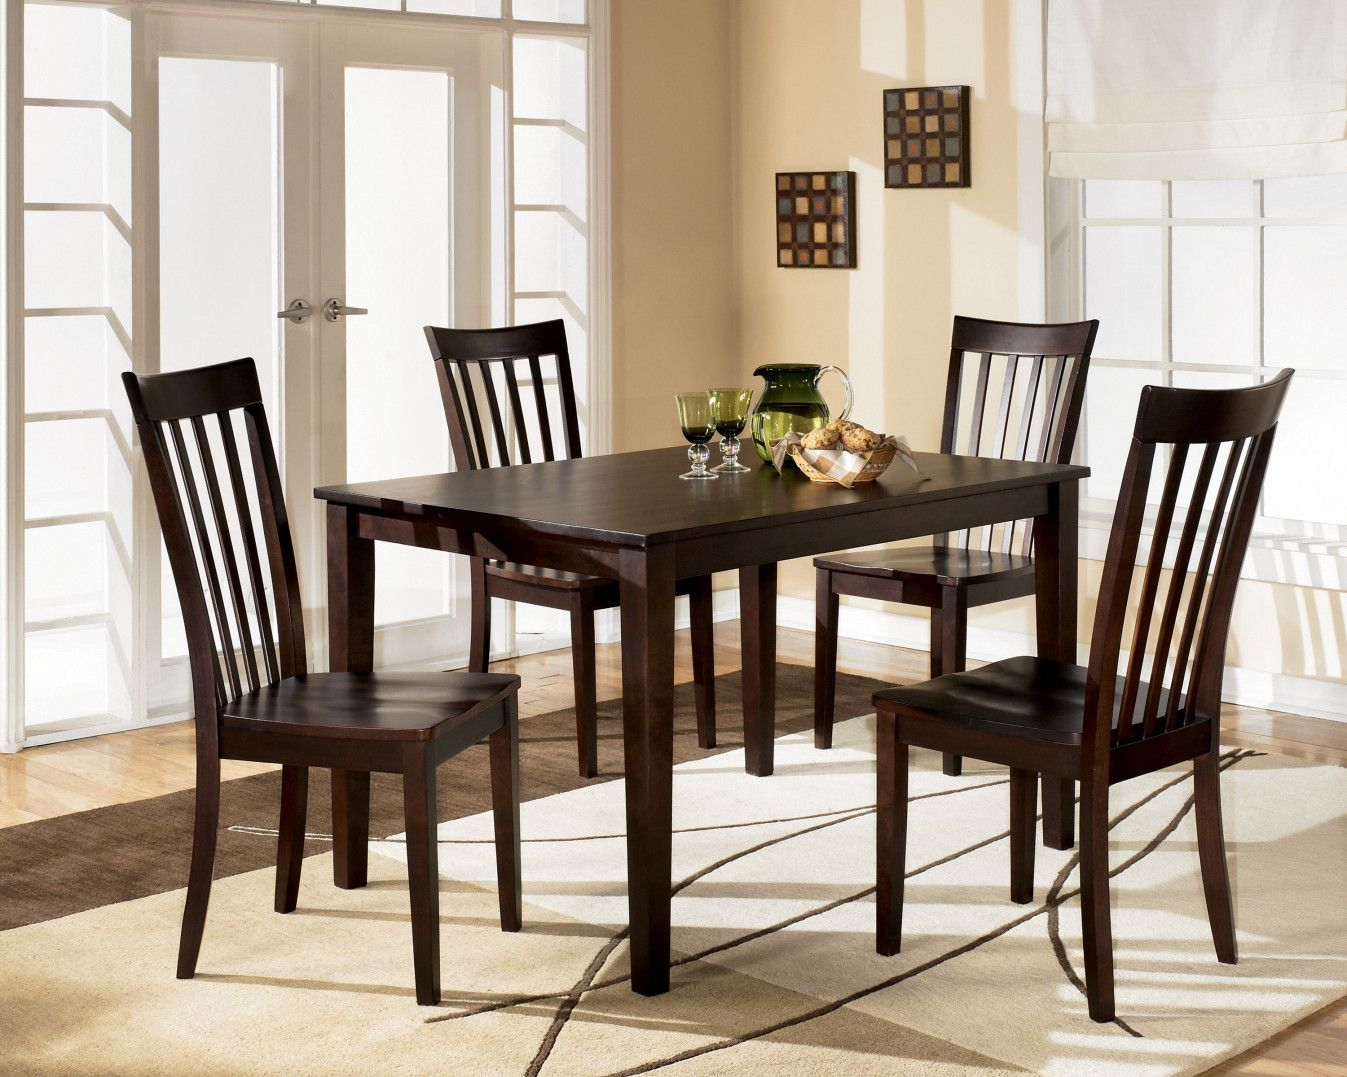 2019 Dining Room Chairs Ebay  Modern Home Furniture Check More At Unique Dining Room Table And Chairs Ebay 2018